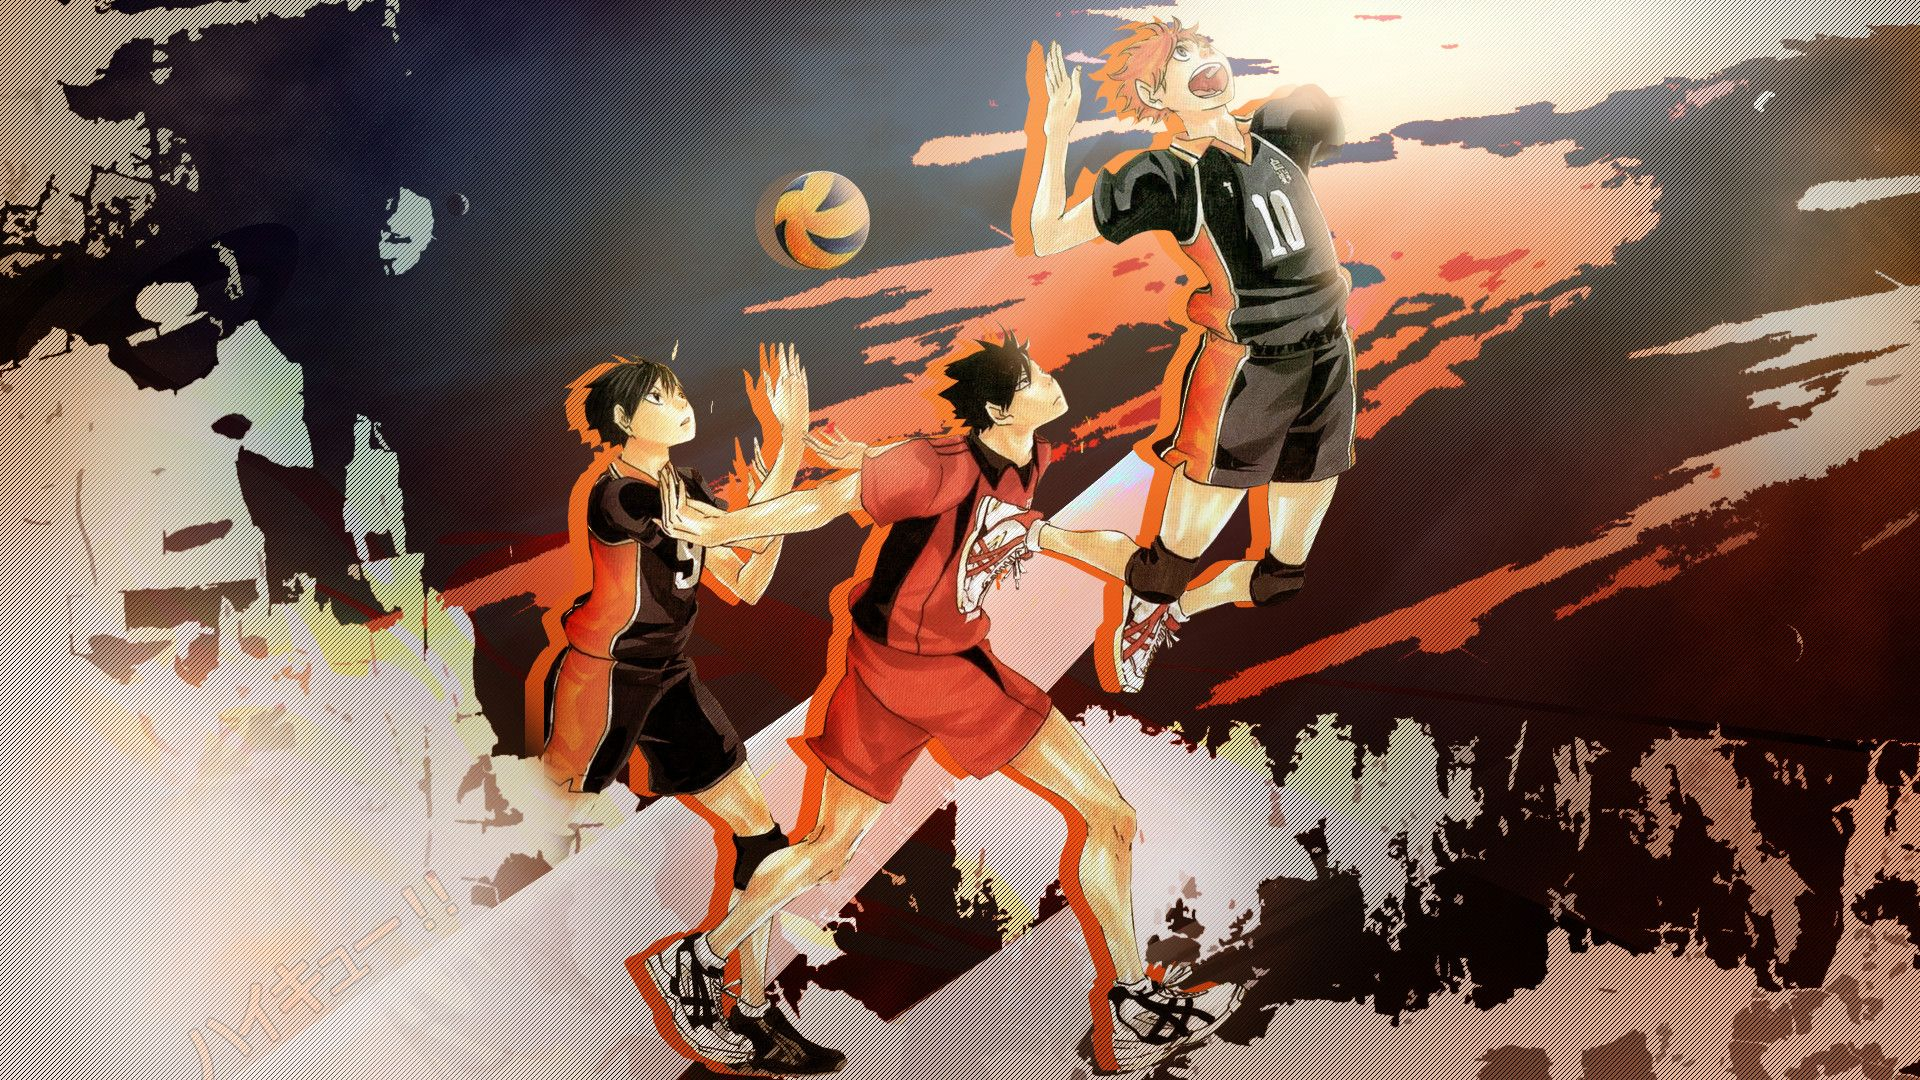 1920x1080 Anime Wallpapers Haikyuu Hd 4k Download For Mobile Iphone Pc Haikyuu Lucu Iphone